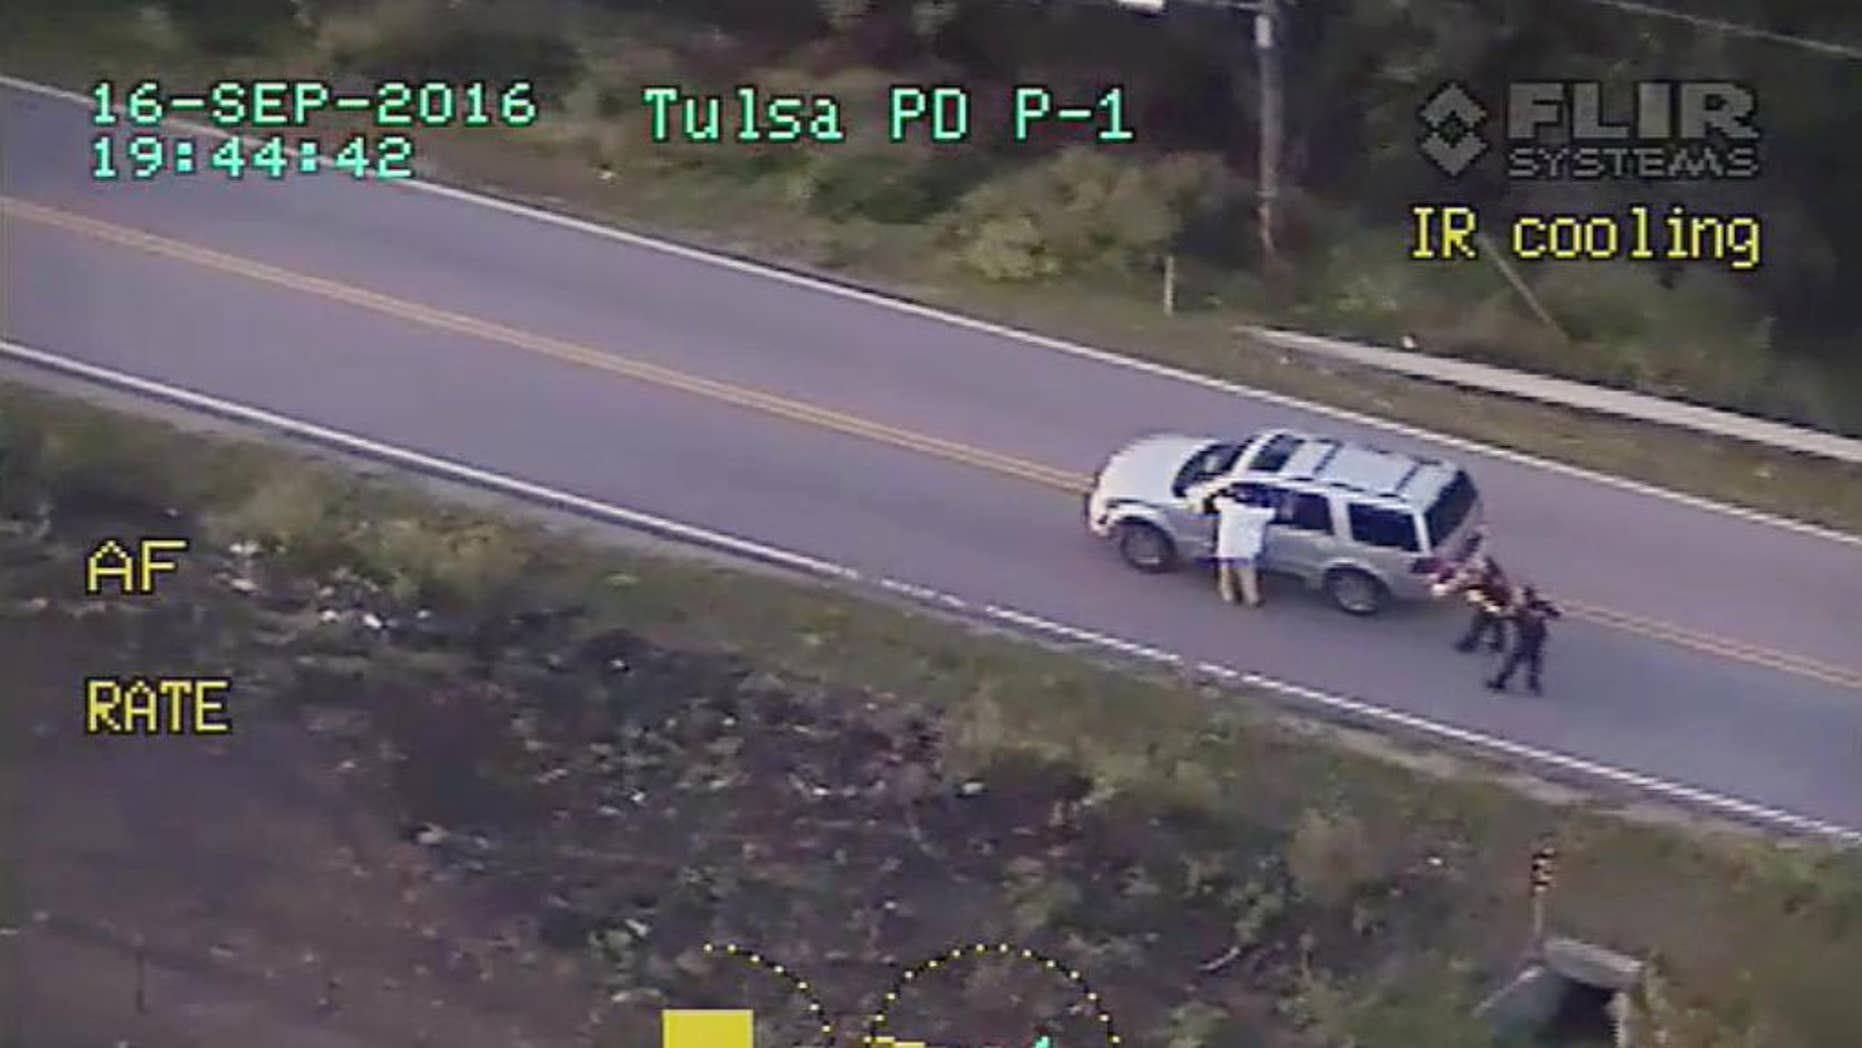 FILE - In this photo made from a Sept. 16, 2016 police video, Terence Crutcher, left, with his arms up is pursued by police officers as he walks next to his stalled SUV moments before he was shot and killed by one of the officers in Tulsa, Okla. Recent shootings by police raise a fundamental question: In the moments after officers shoot someone, how soon can medical aid be given? (Tulsa Police Department via AP, File)